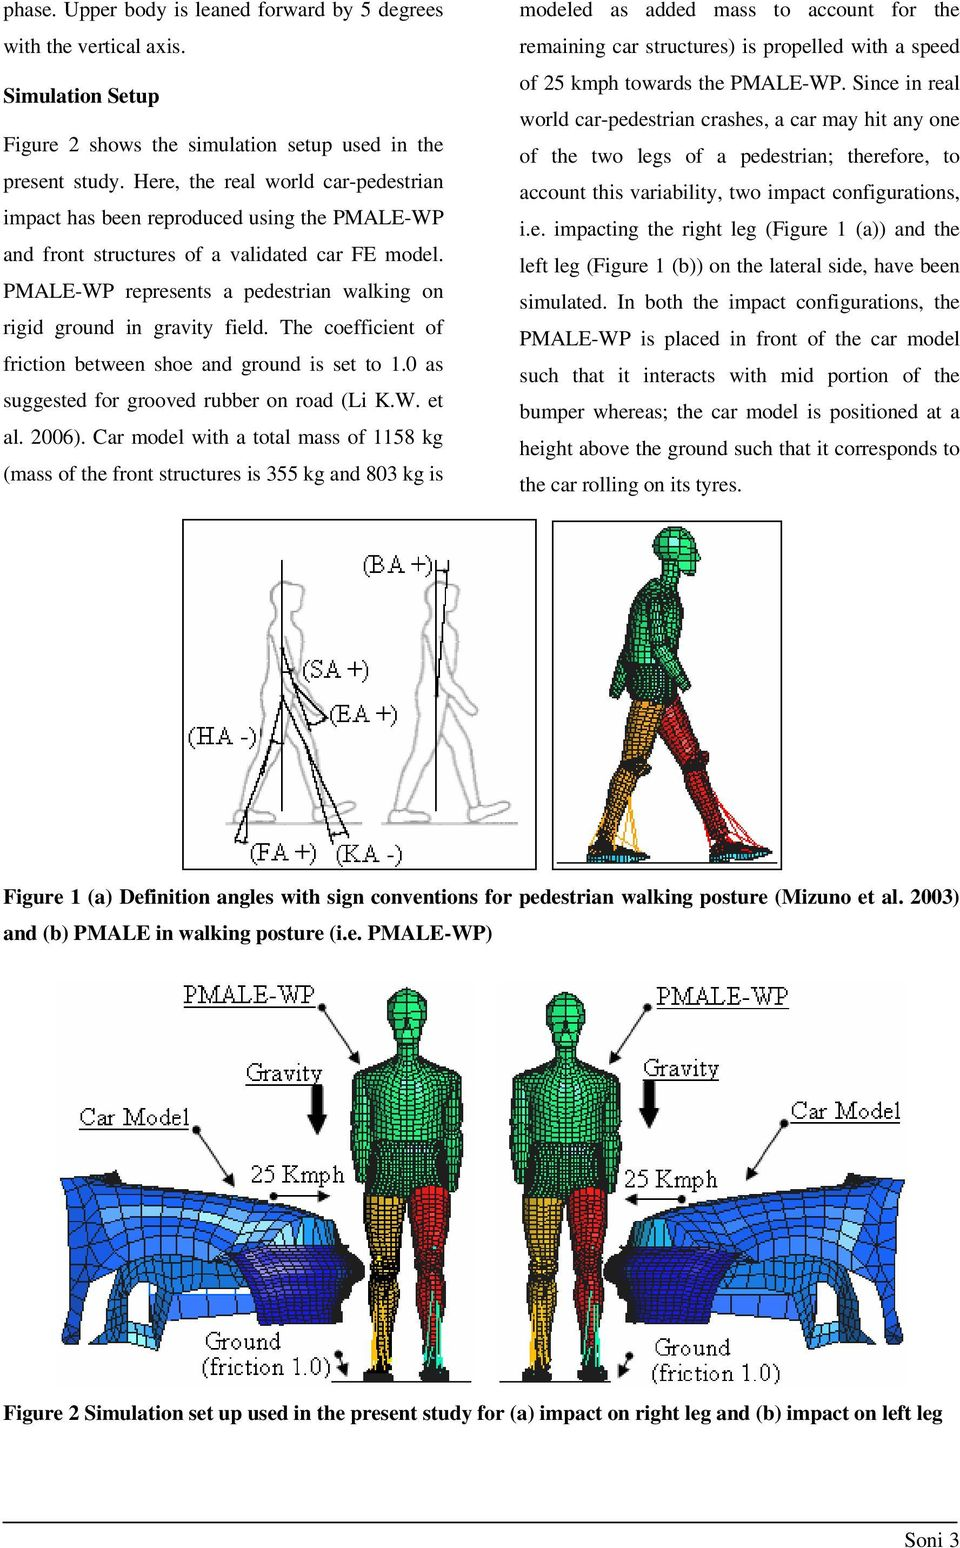 PMALE-WP represents a pedestrian walking on rigid ground in gravity field. The coefficient of friction between shoe and ground is set to 1. as suggested for grooved rubber on road (Li K.W. et al. 26).